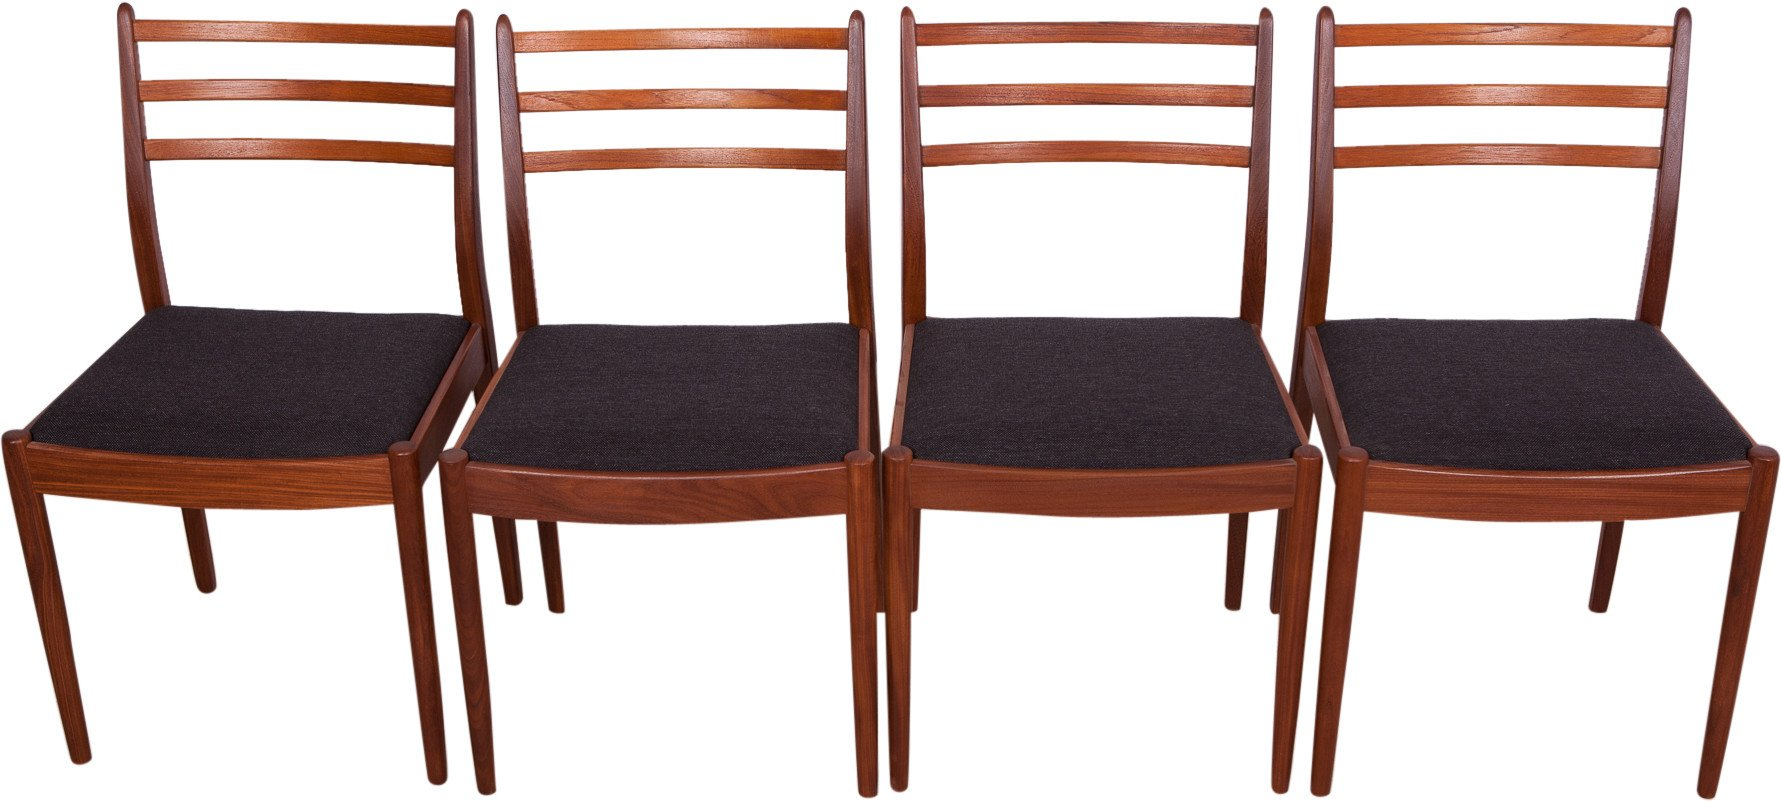 Set of Four Chairs by V. Wilkins, G-Plan, Great Britain, 1960s